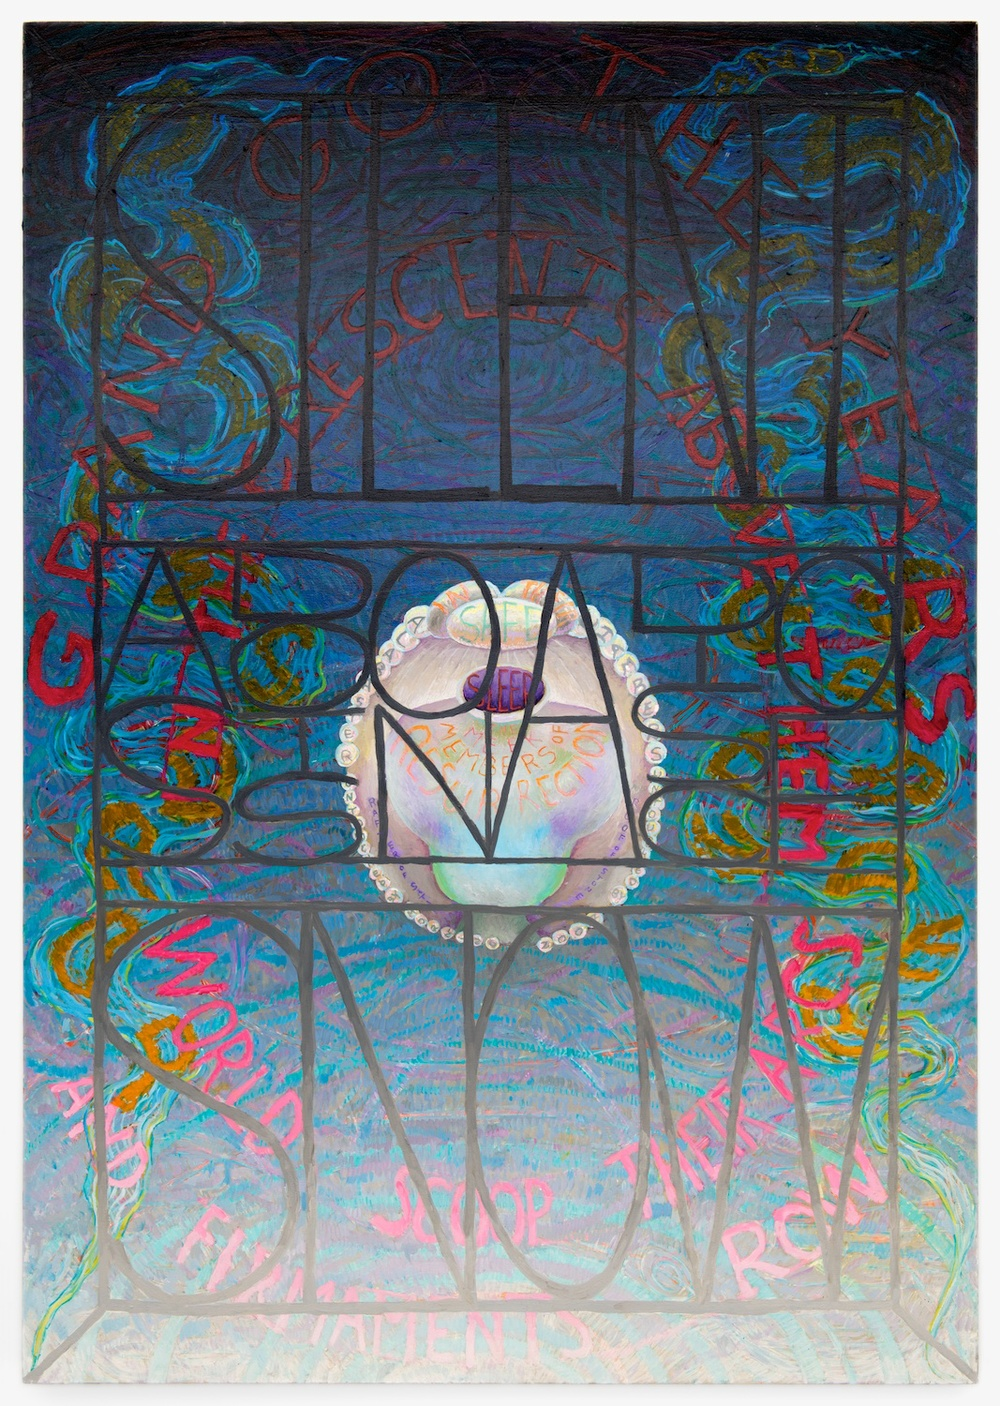 Philip Hanson  Faith in their Alabaster Chamber (Dickinson)  2012 Oil on canvas 64h x 45w in PHan003